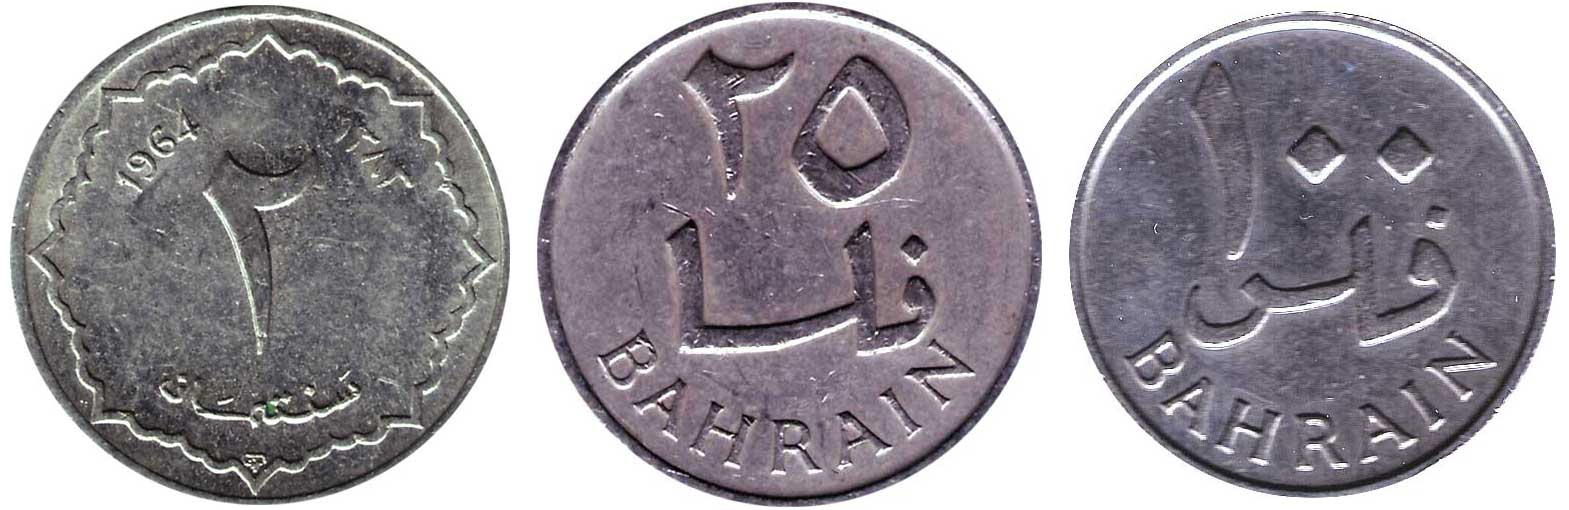 World Coin Collecting Reading Arabic Numbers And Dates